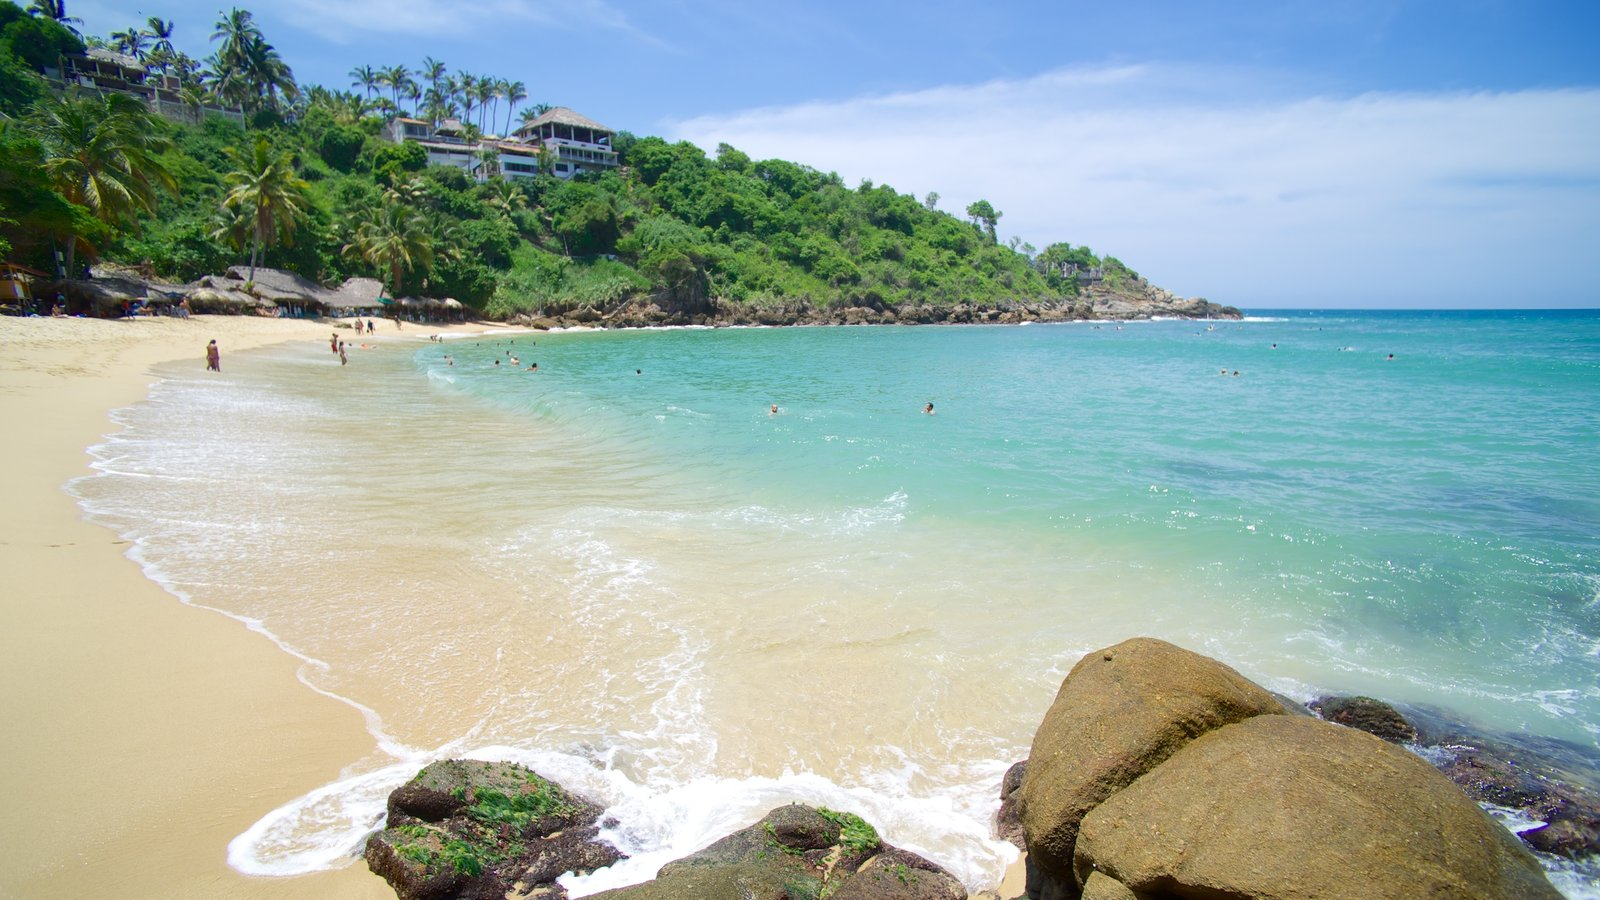 Carrizalillo Beach which includes tropical scenes, a beach and rocky coastline